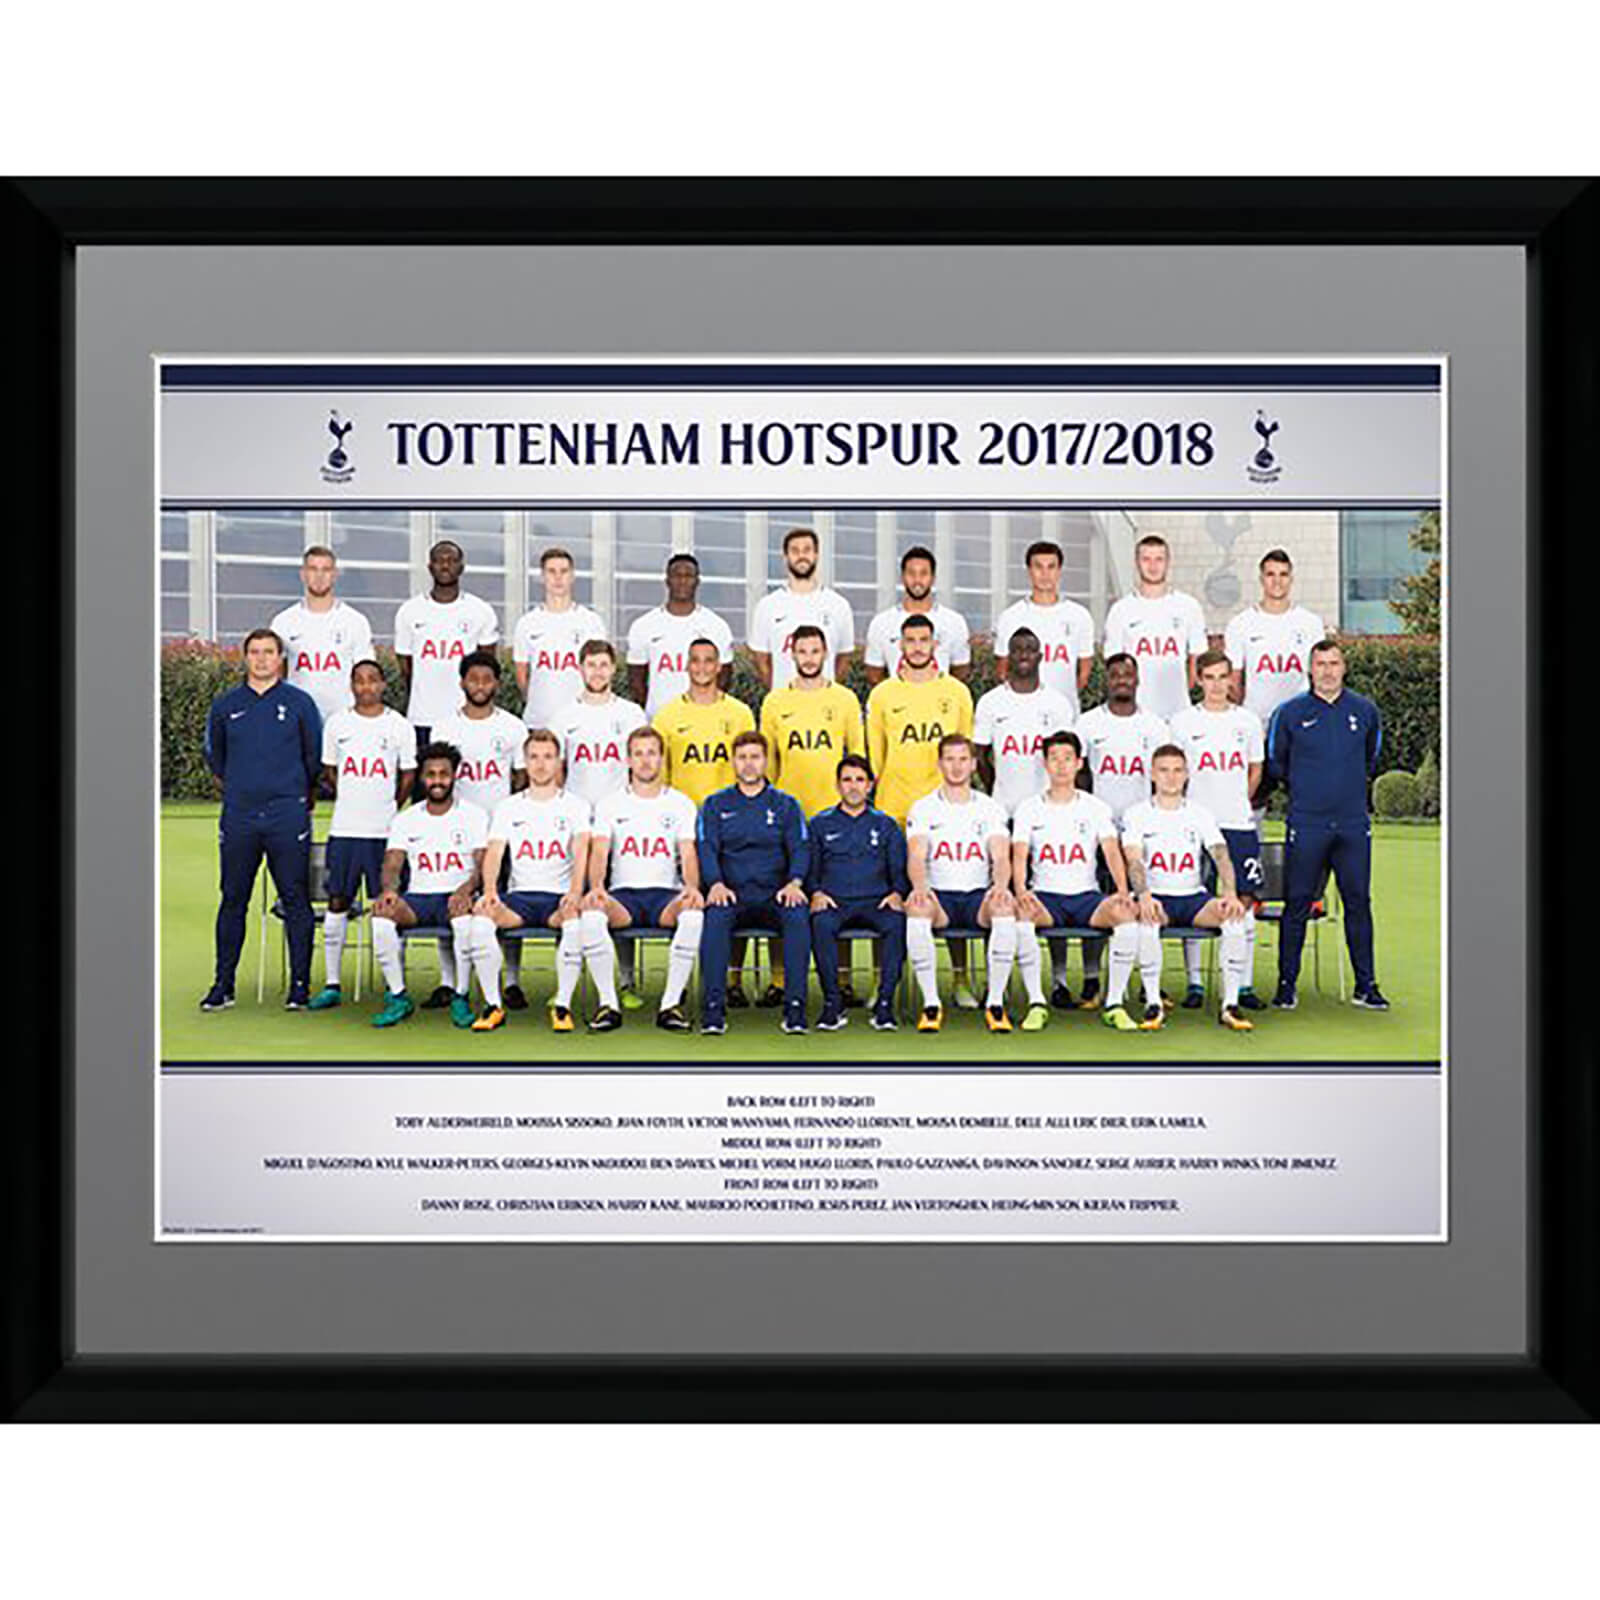 Tottenham Team Photo 17/18 Framed Photograph 12 x 16 Inch